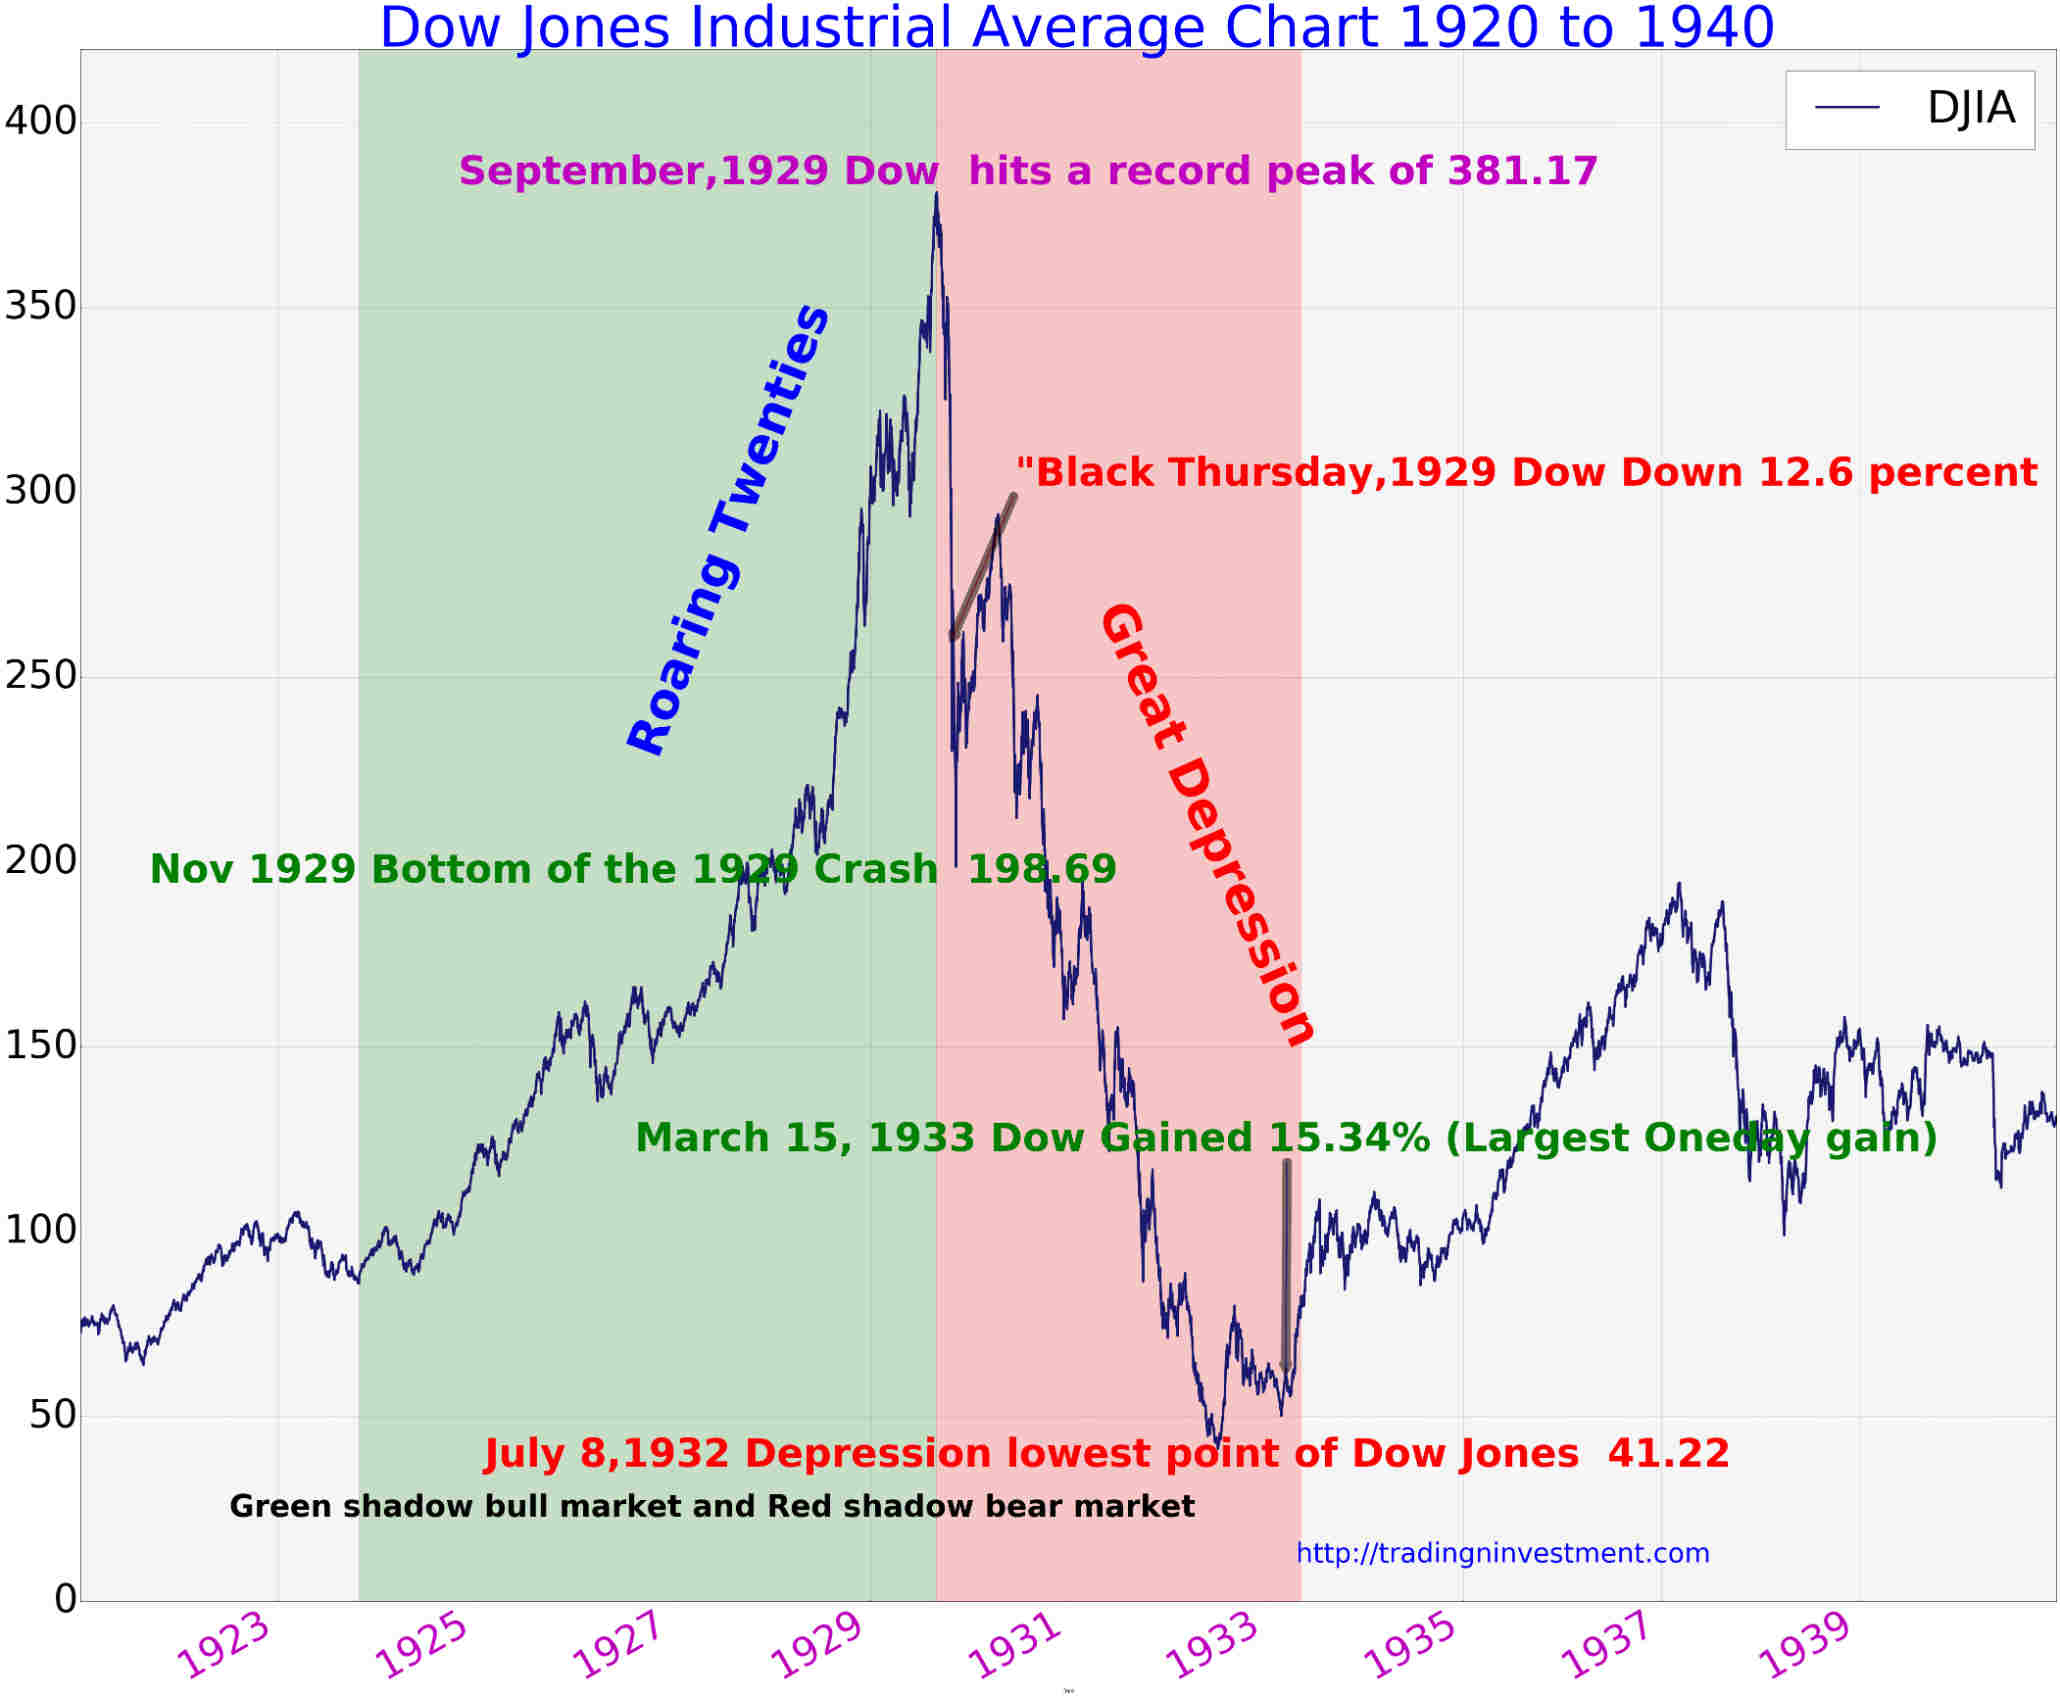 100 Years Dow Jones Industrial Average Chart History (Updated ) - TradingNinvestment